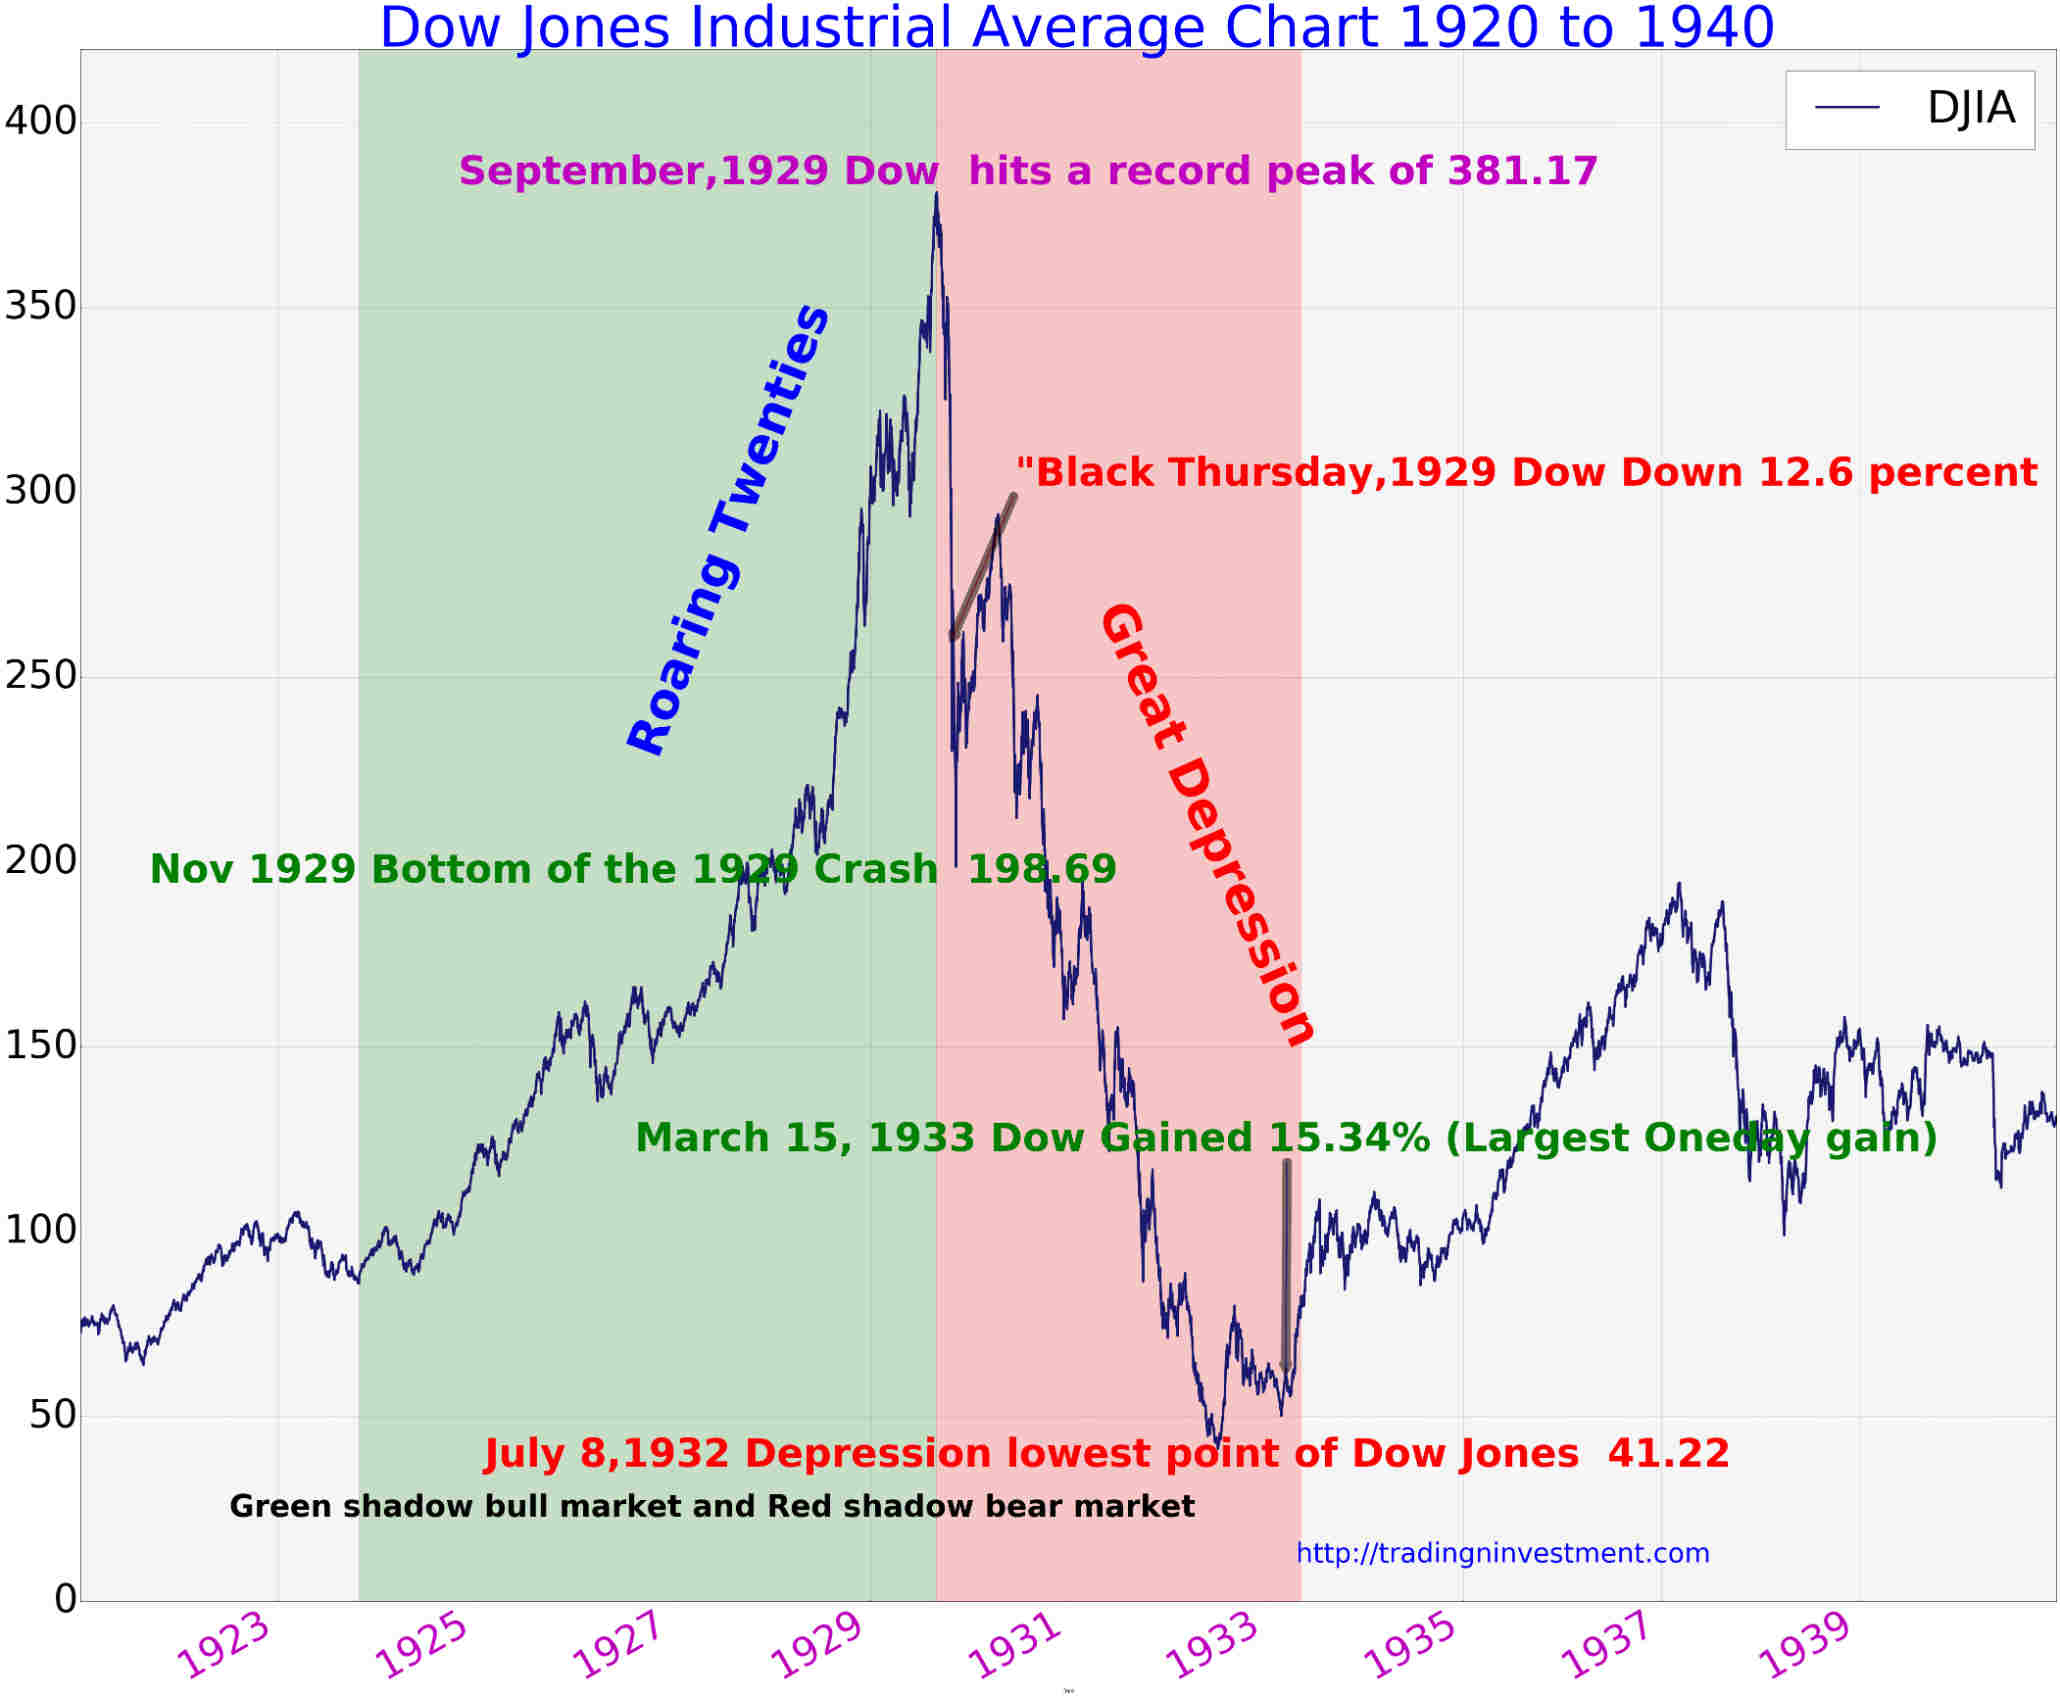 100 Years Dow Jones Industrial Average Chart History (Updated ) - TradingNinvestment